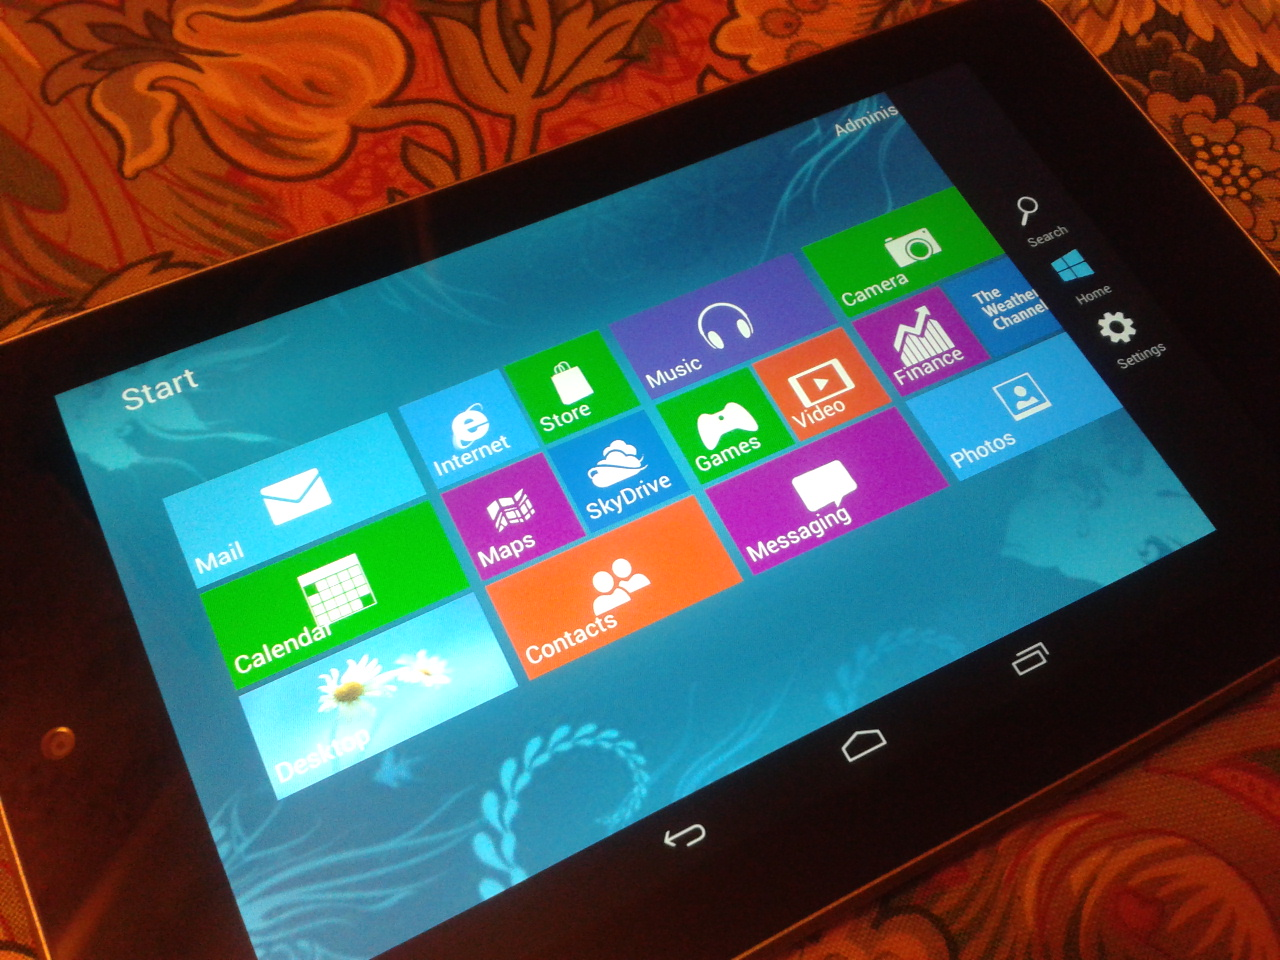 Windows 8 on Asus Nexus 7